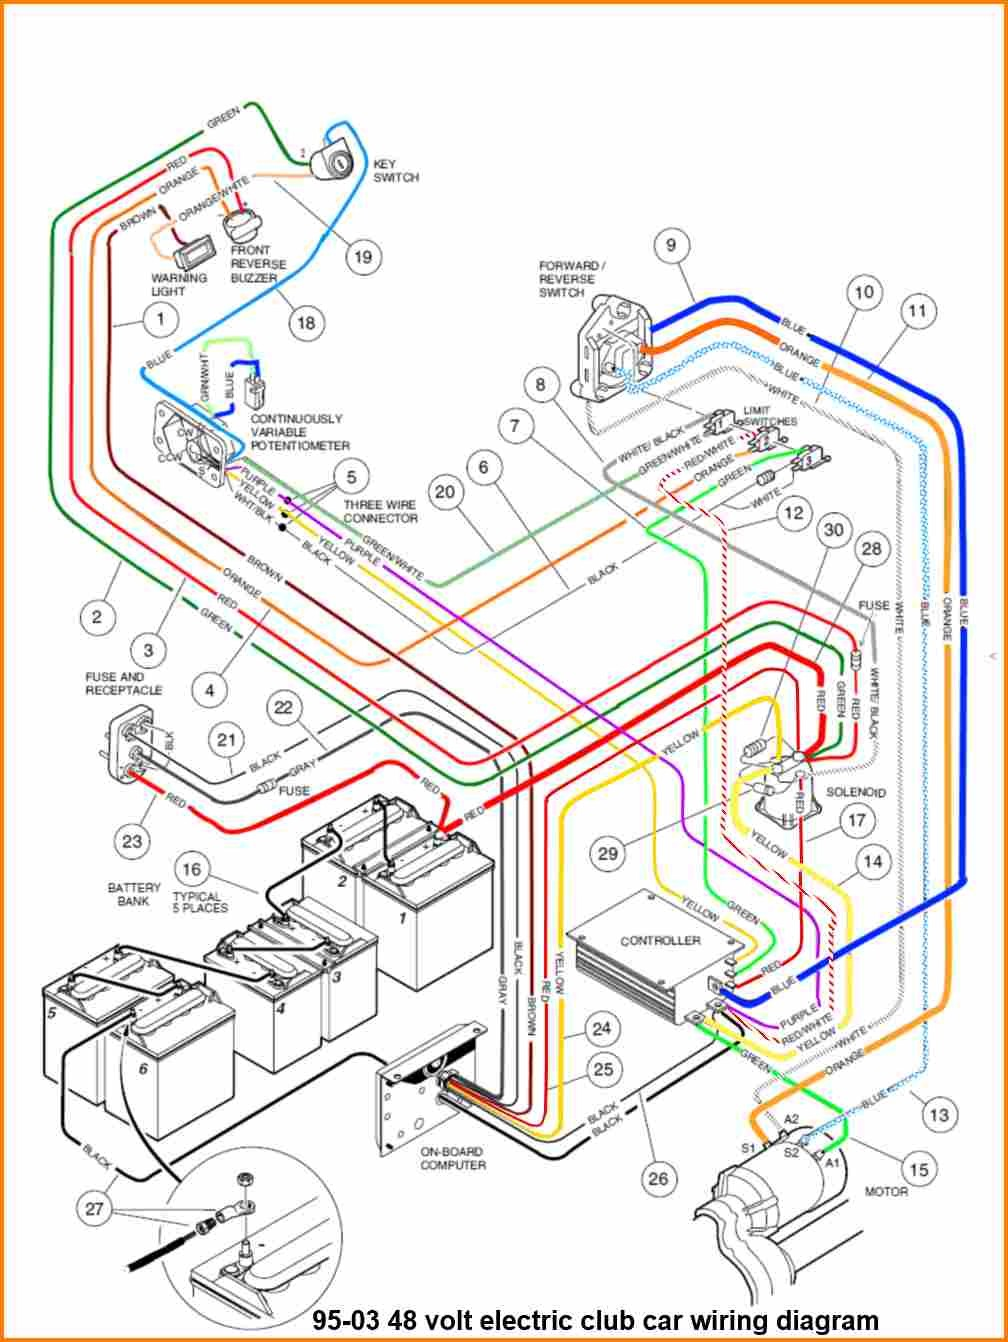 wiring diagram 2000 36 volt club car house wiring diagram symbols u2022 rh  mollusksurfshopnyc com 2007